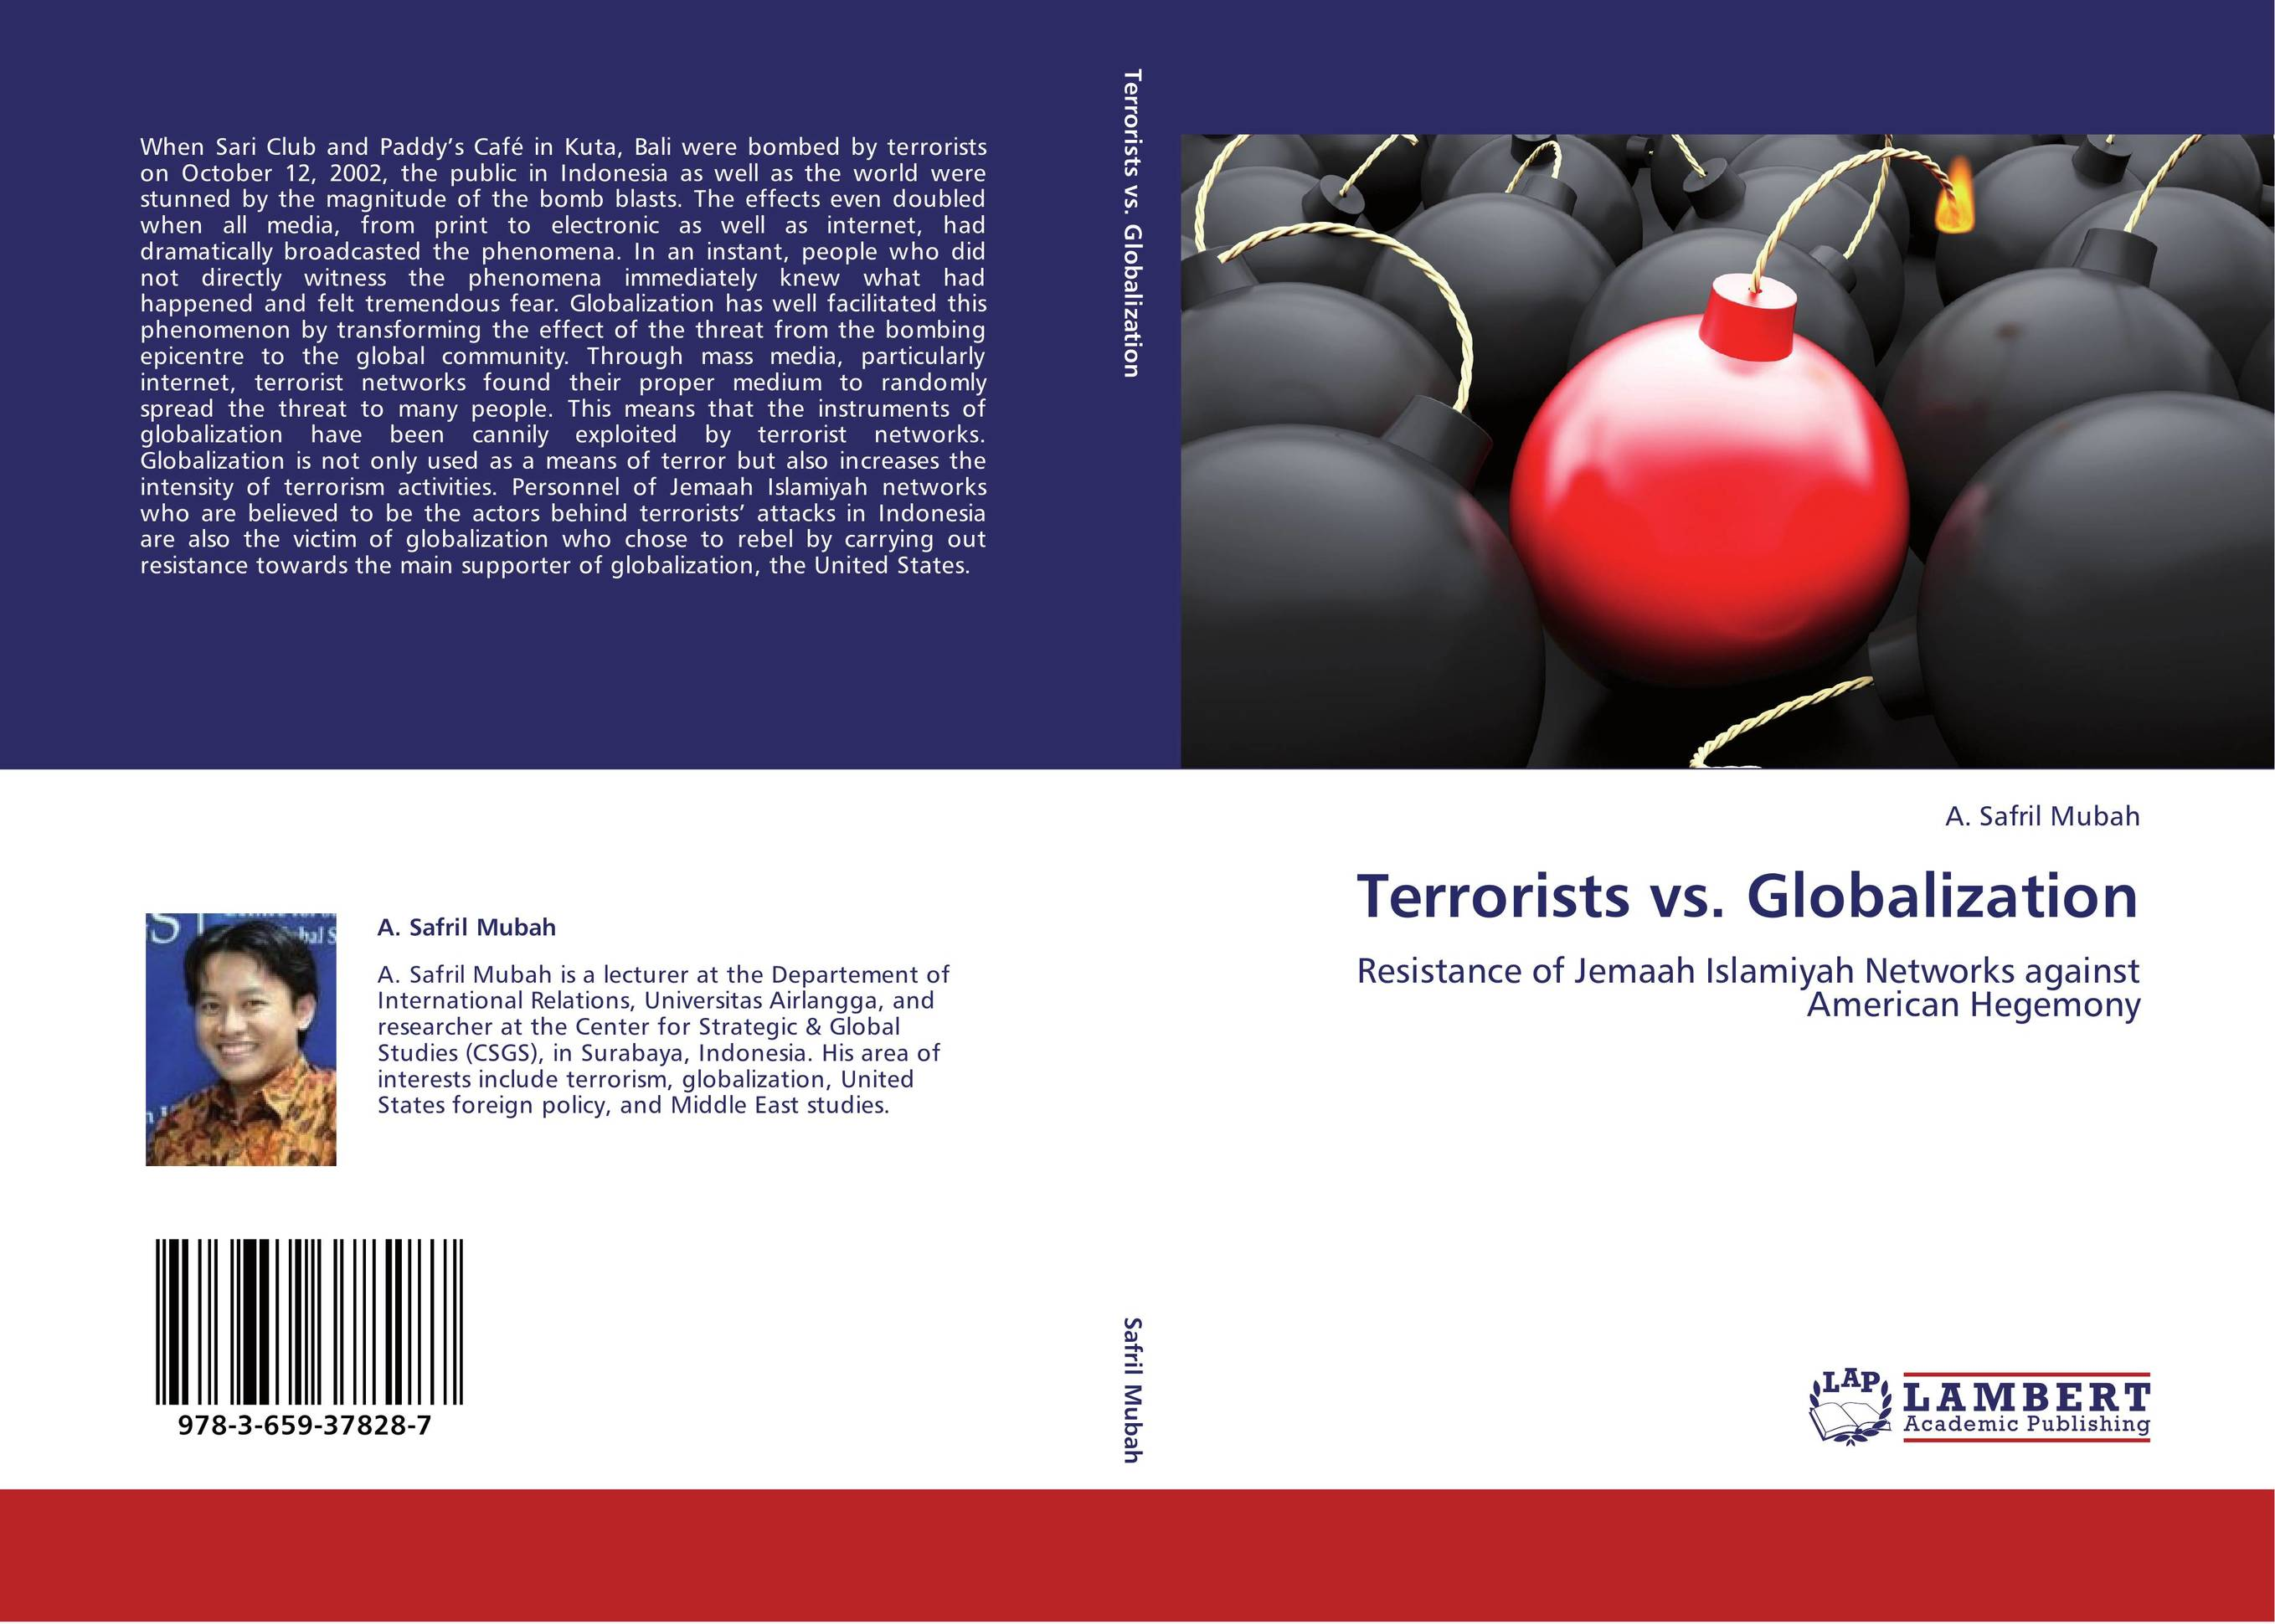 9783659378287 Terrorists vs. Globalization A. Safril Mubah